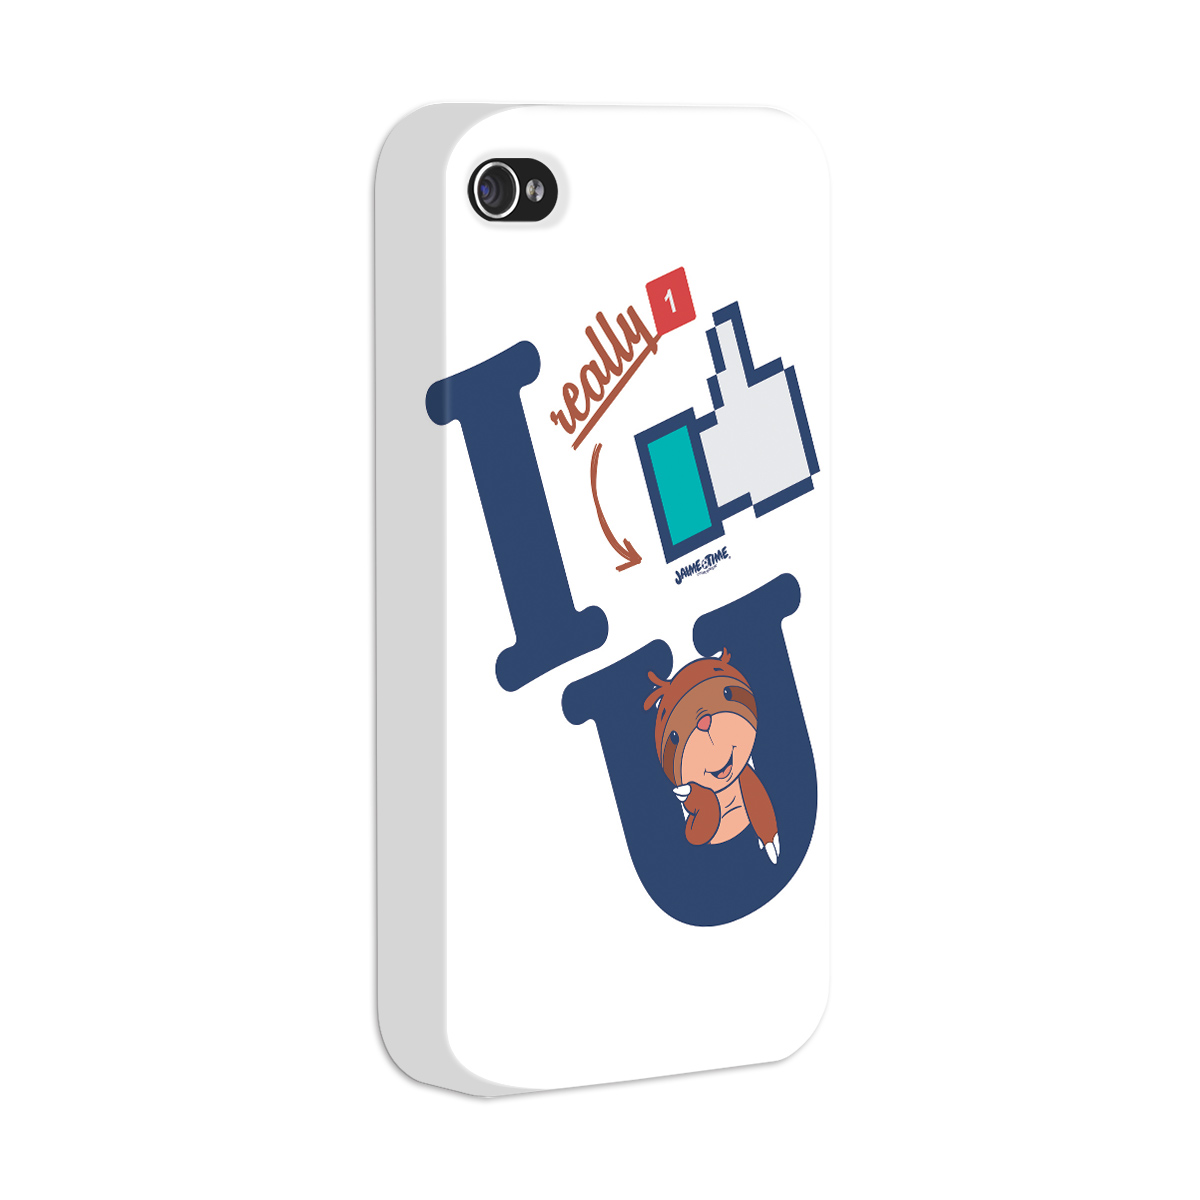 Capa para iPhone 4/4S Jaime I Like You